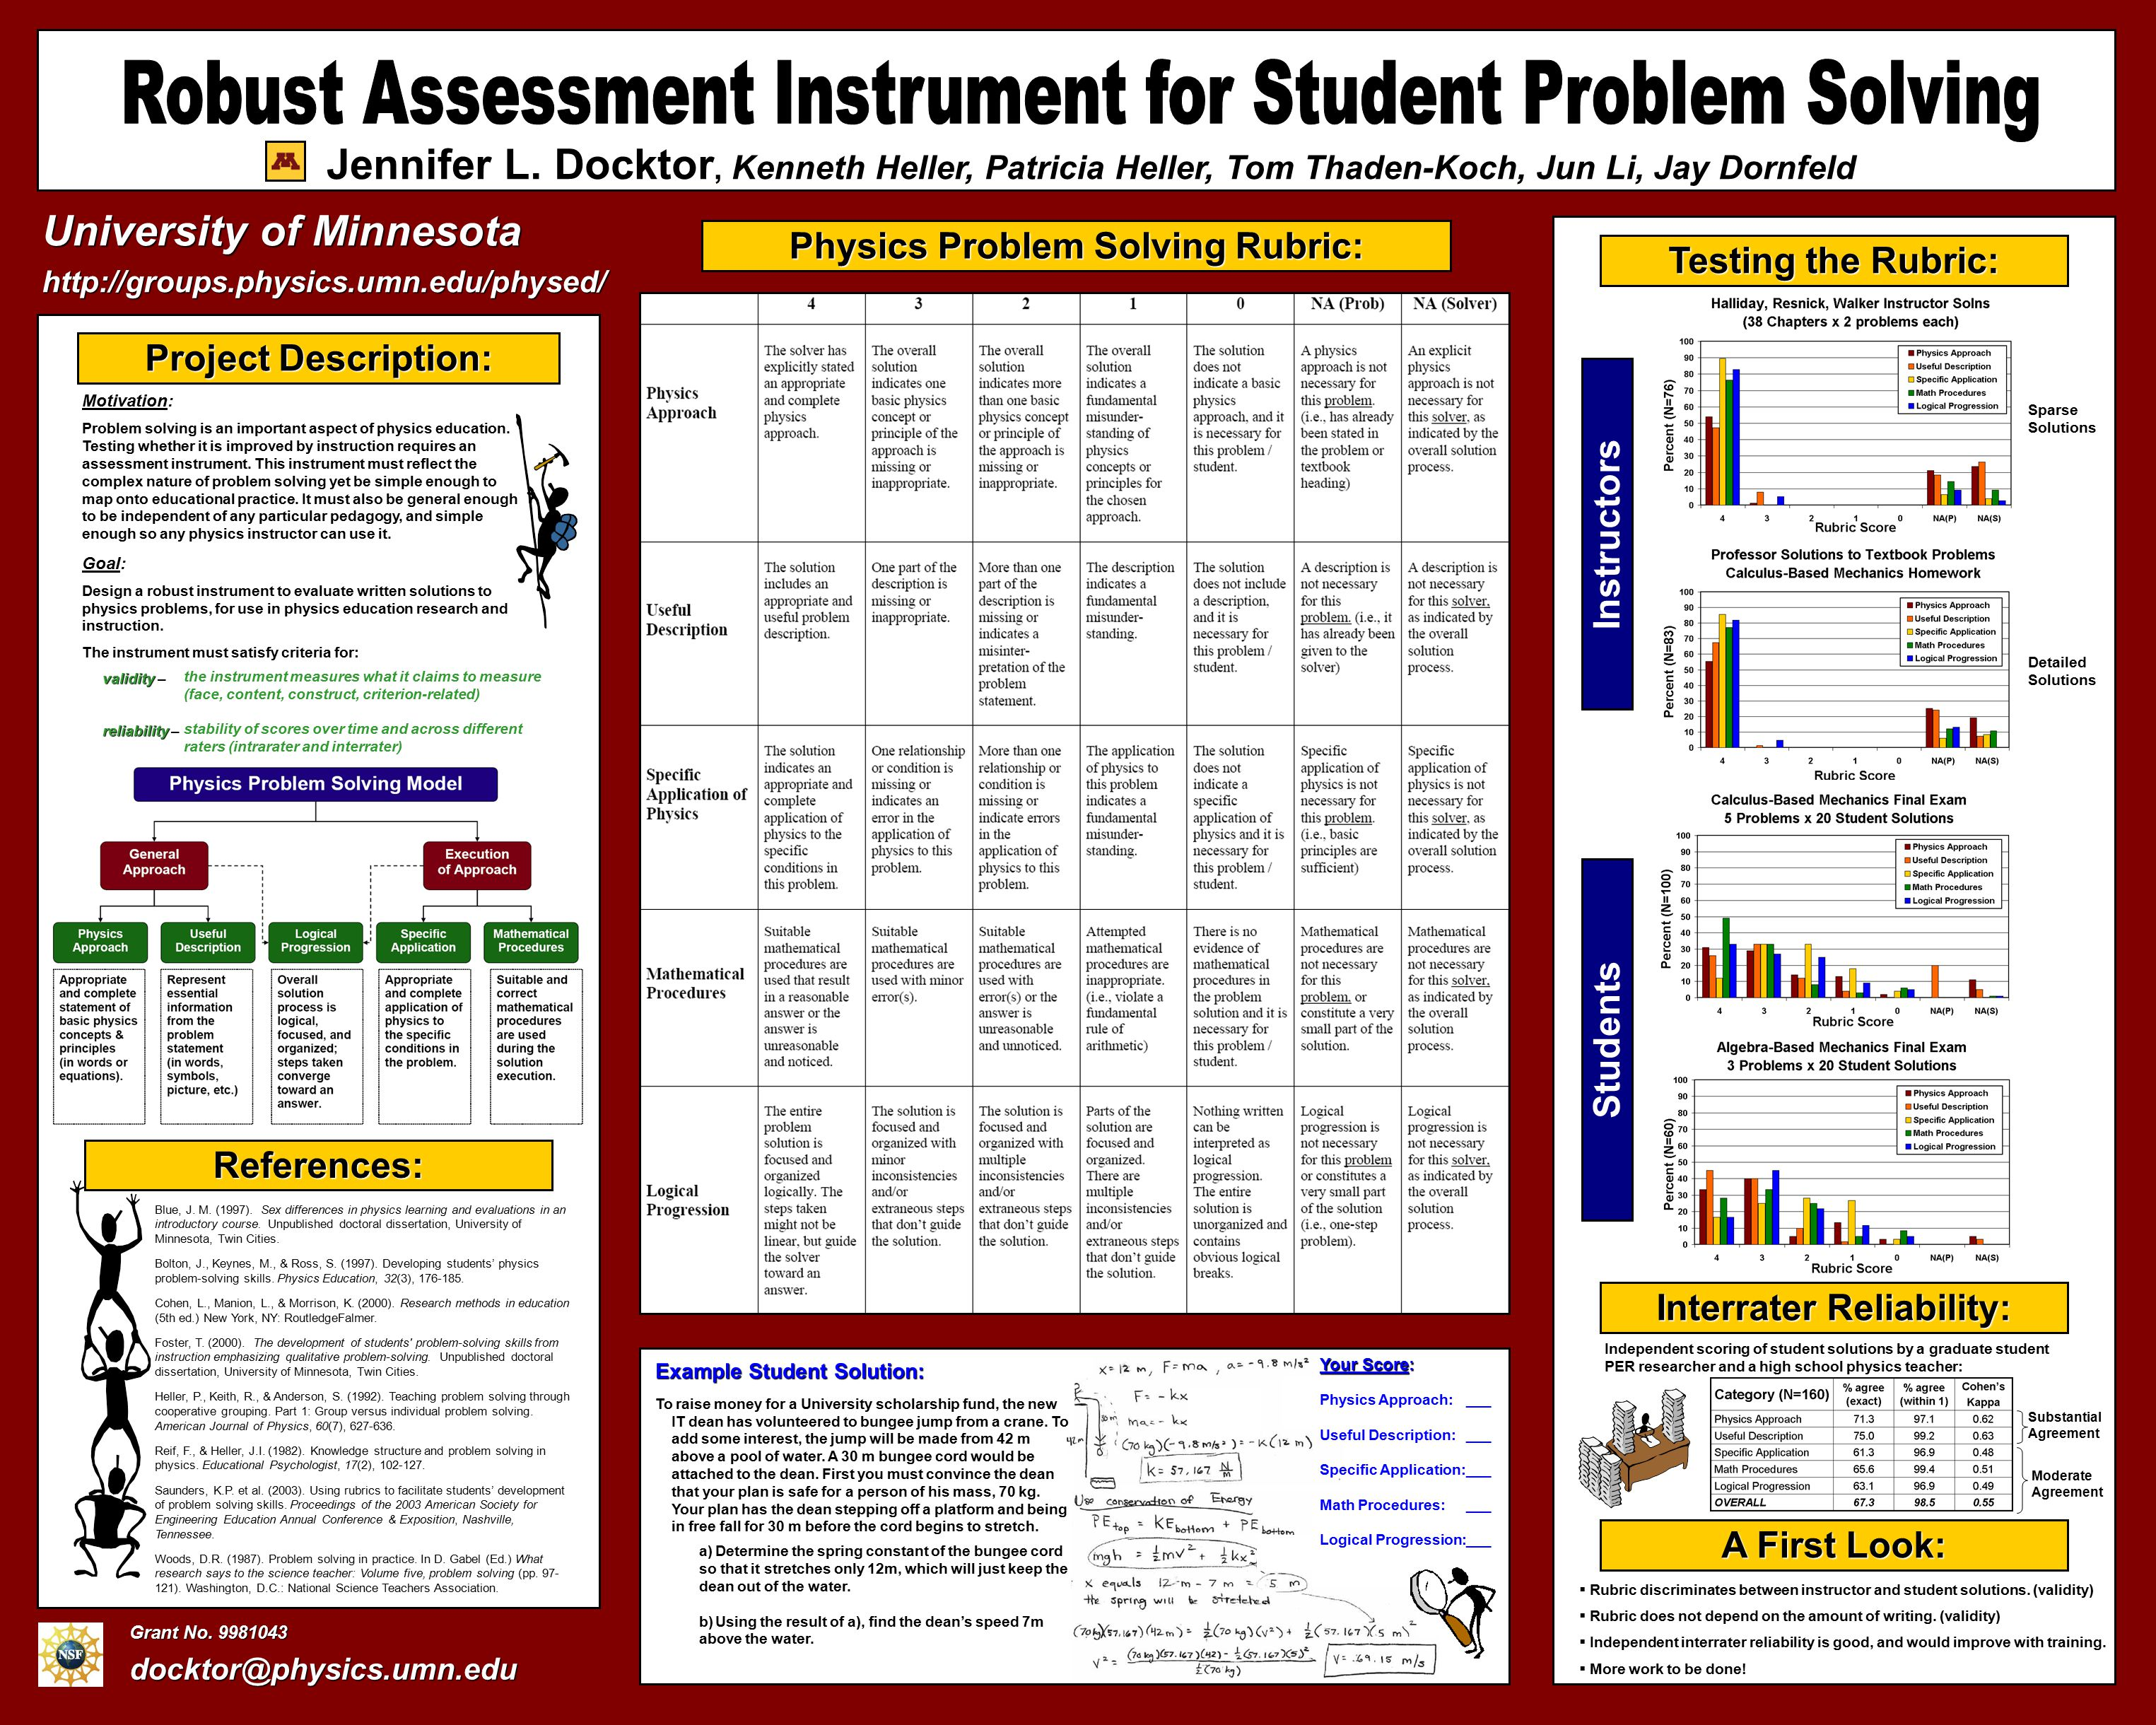 019 High School Physics Research Paper Rubric Slide 1 Unforgettable Full